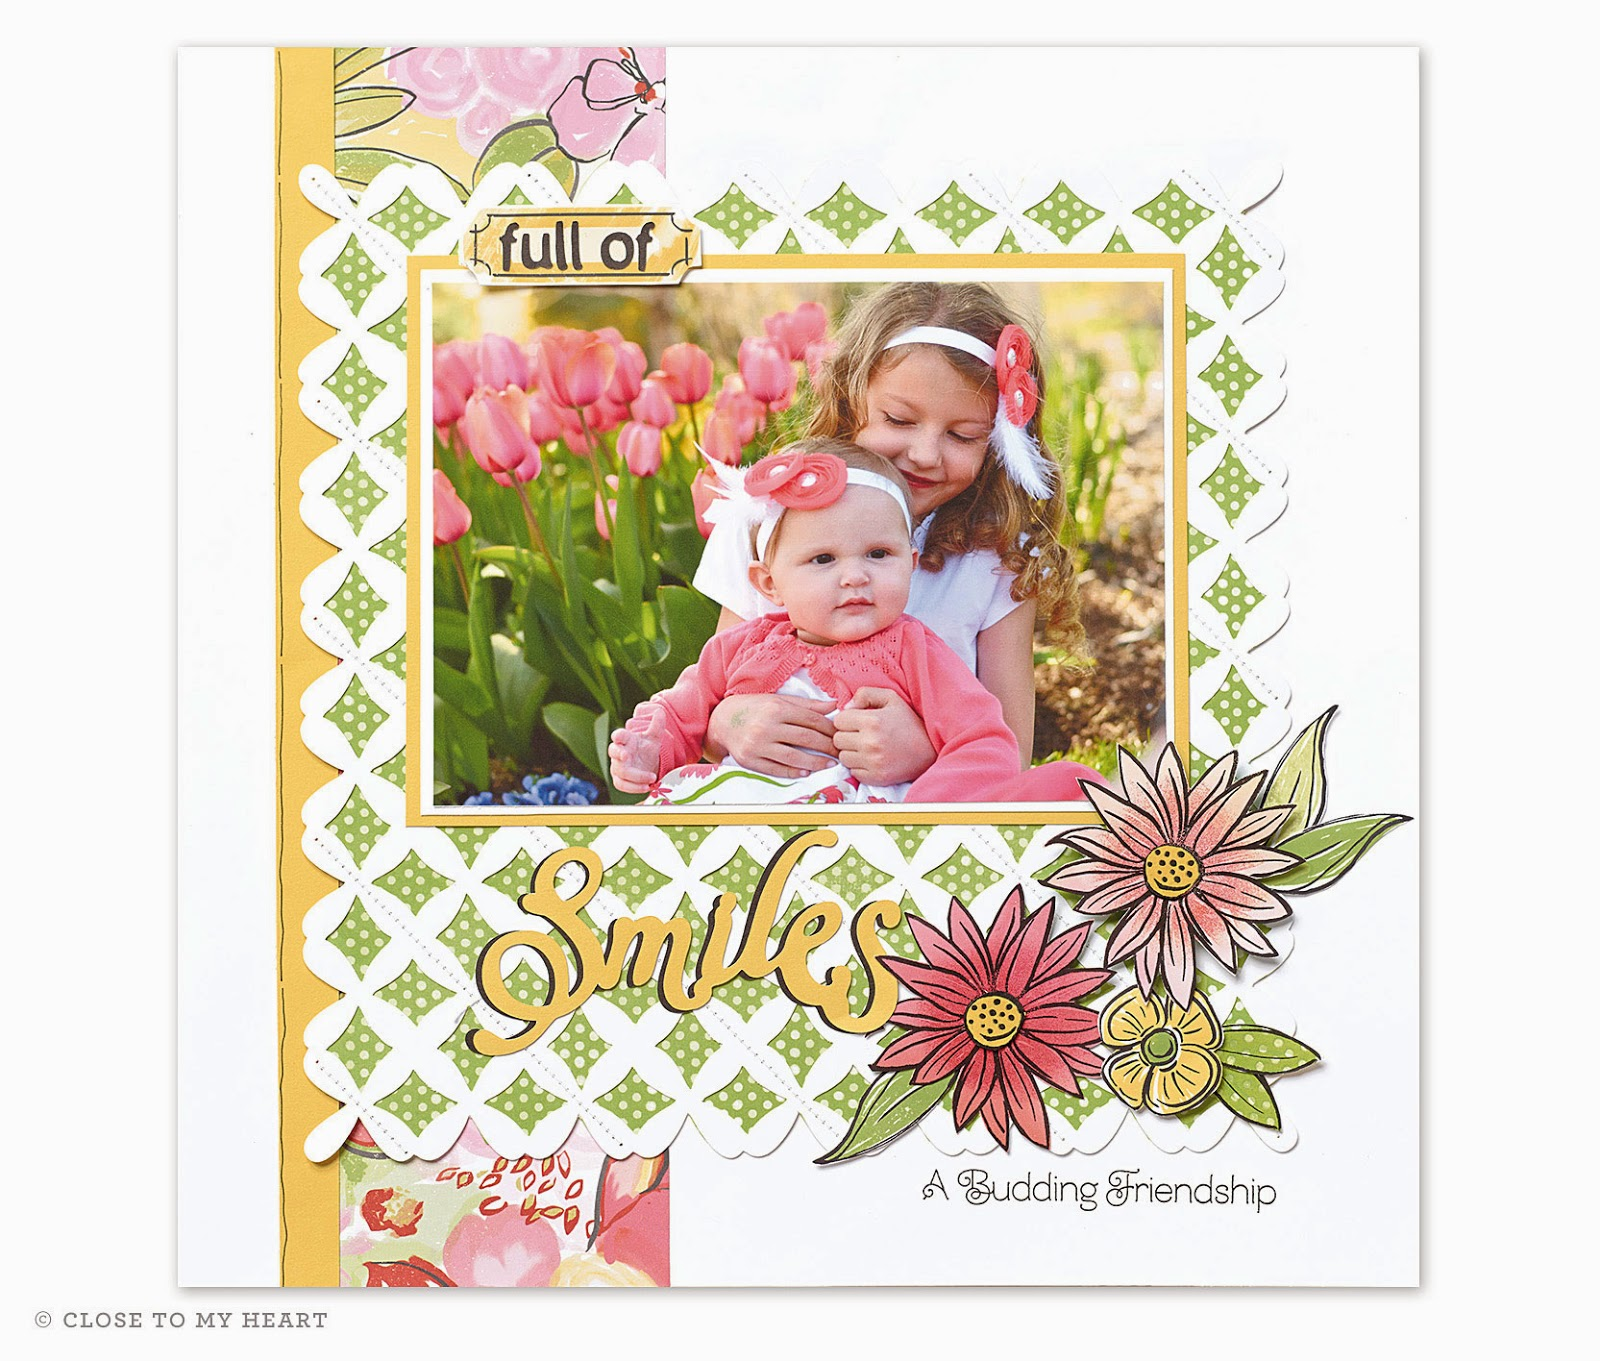 CTMH Brushed Scrapbook Layout